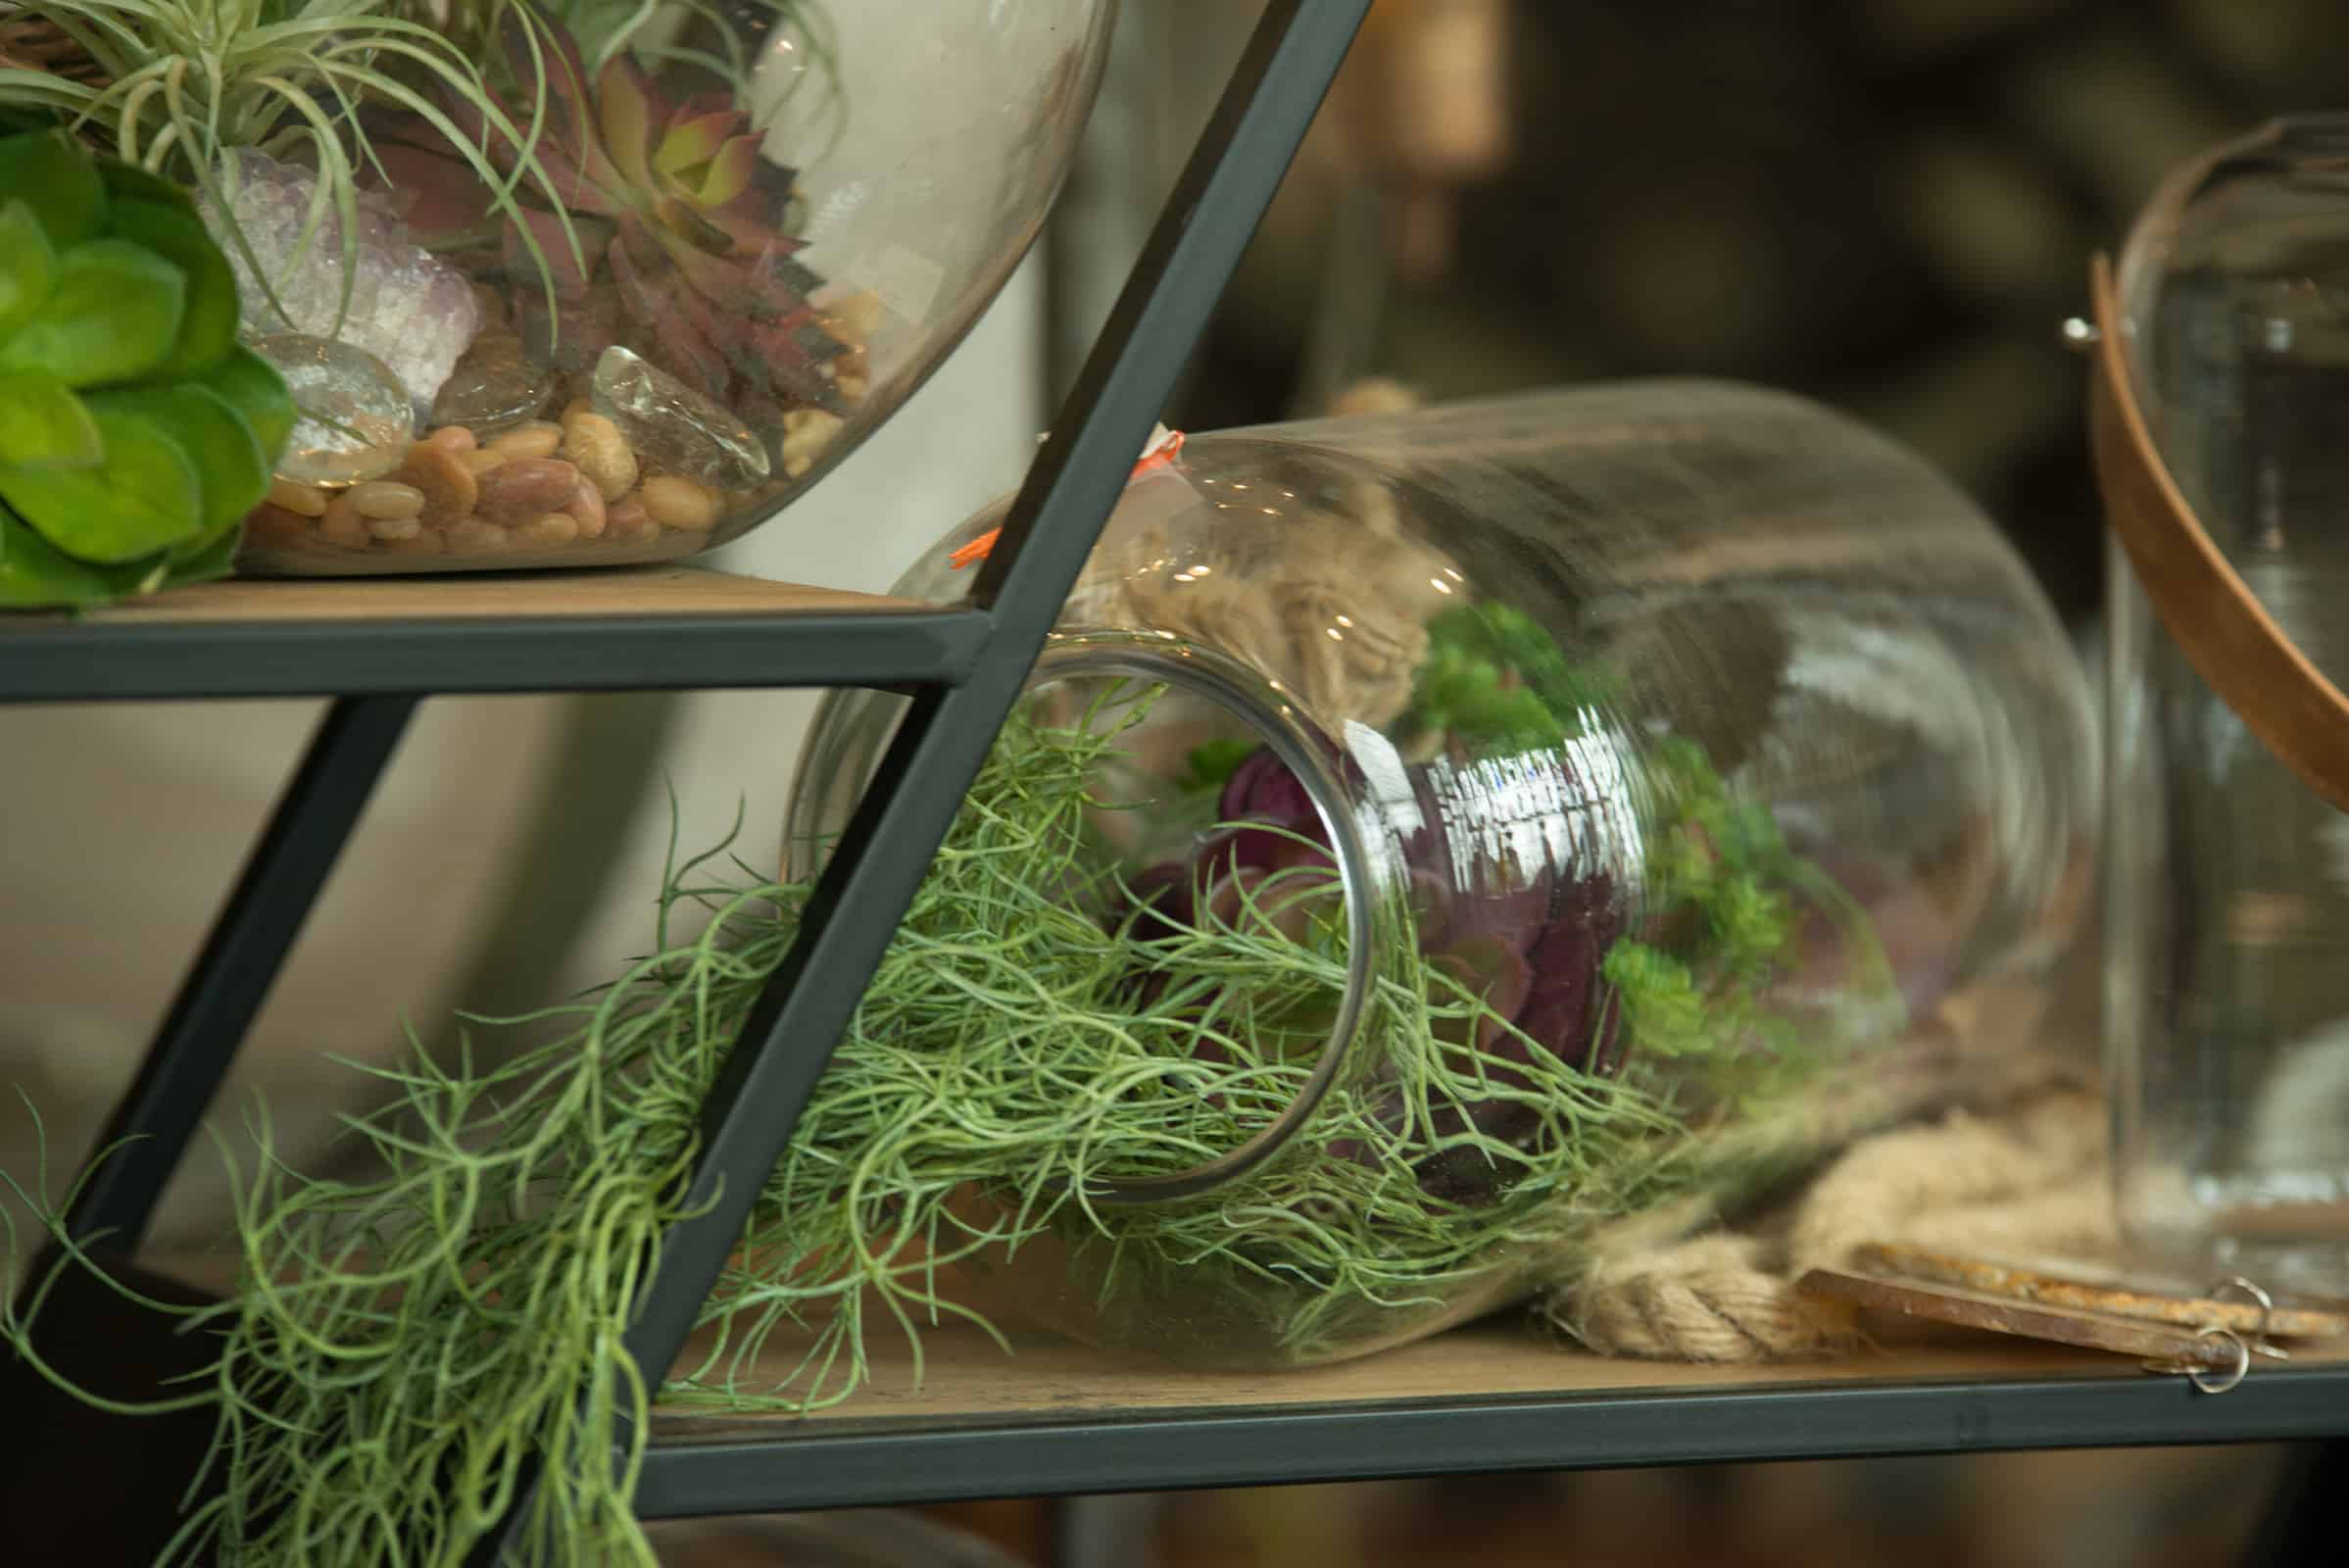 Make The Terrarium Your Own Style By Adding Decorative Accents